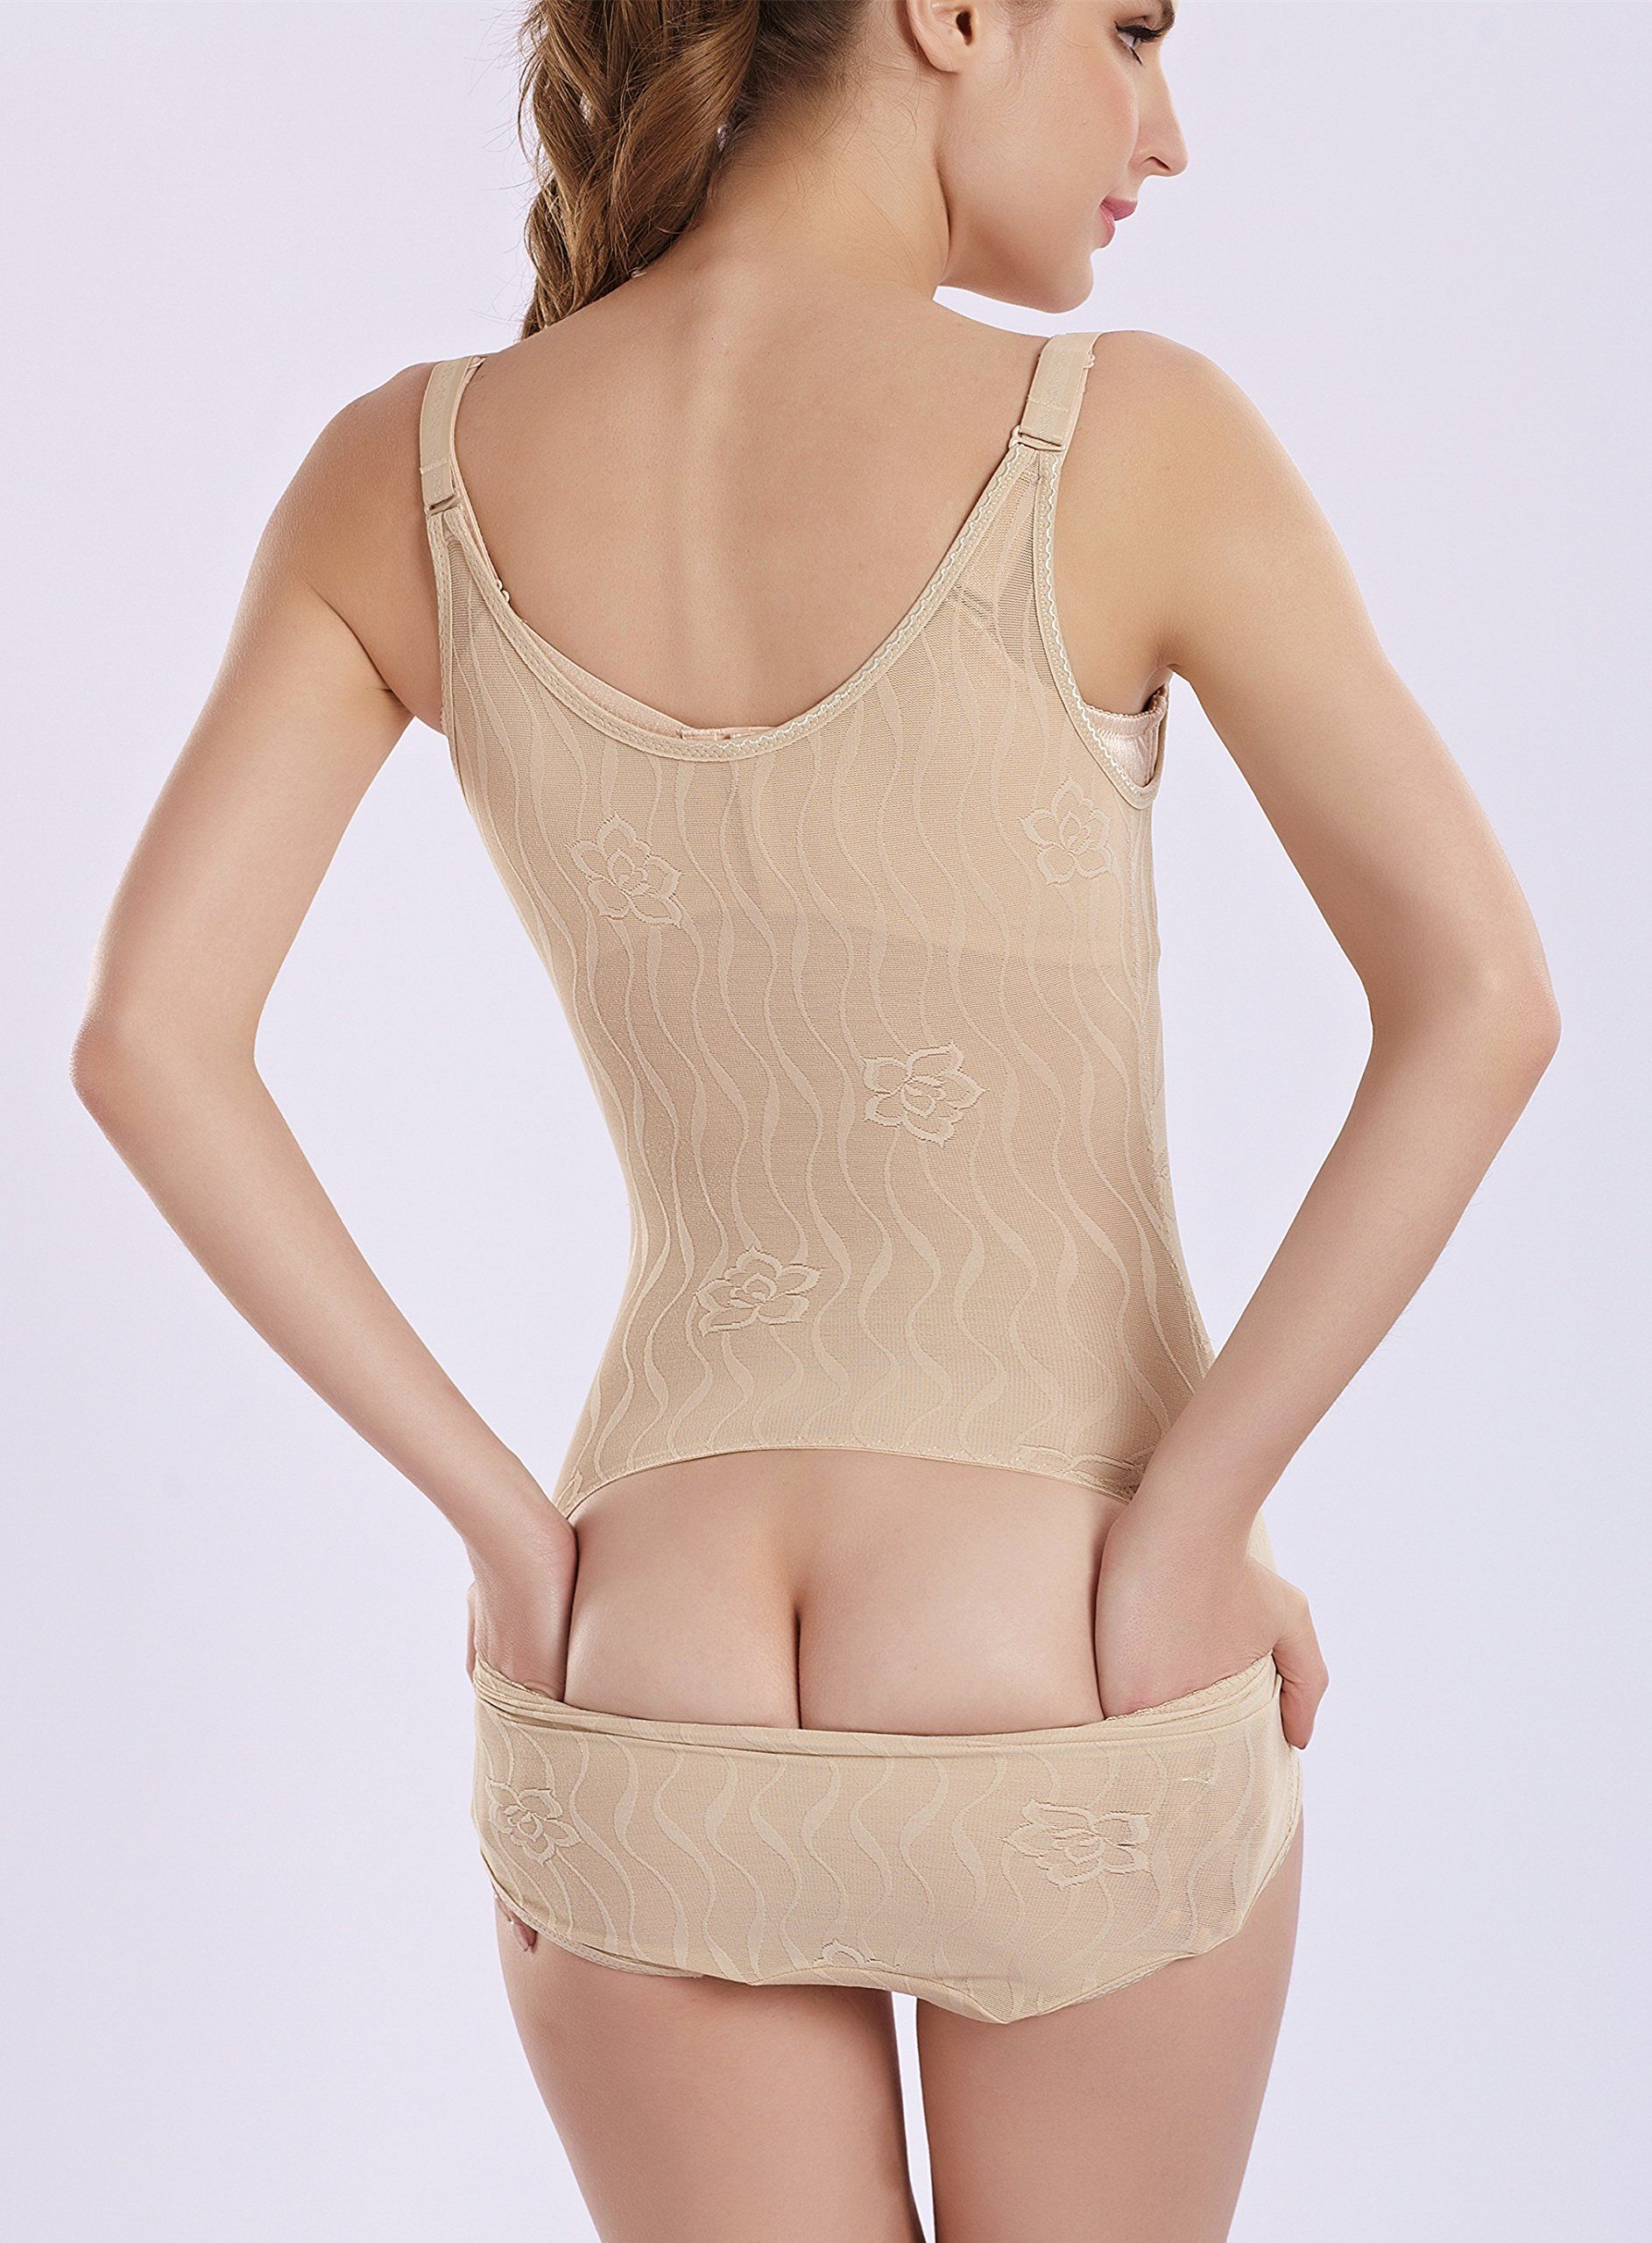 6a6b2f147e41b Kffyeye Womens Thin Seamless Firm Control Shapewear Open Bust Bodysuit  BodyShaper S Beige9020     You can get additional details at the image link.